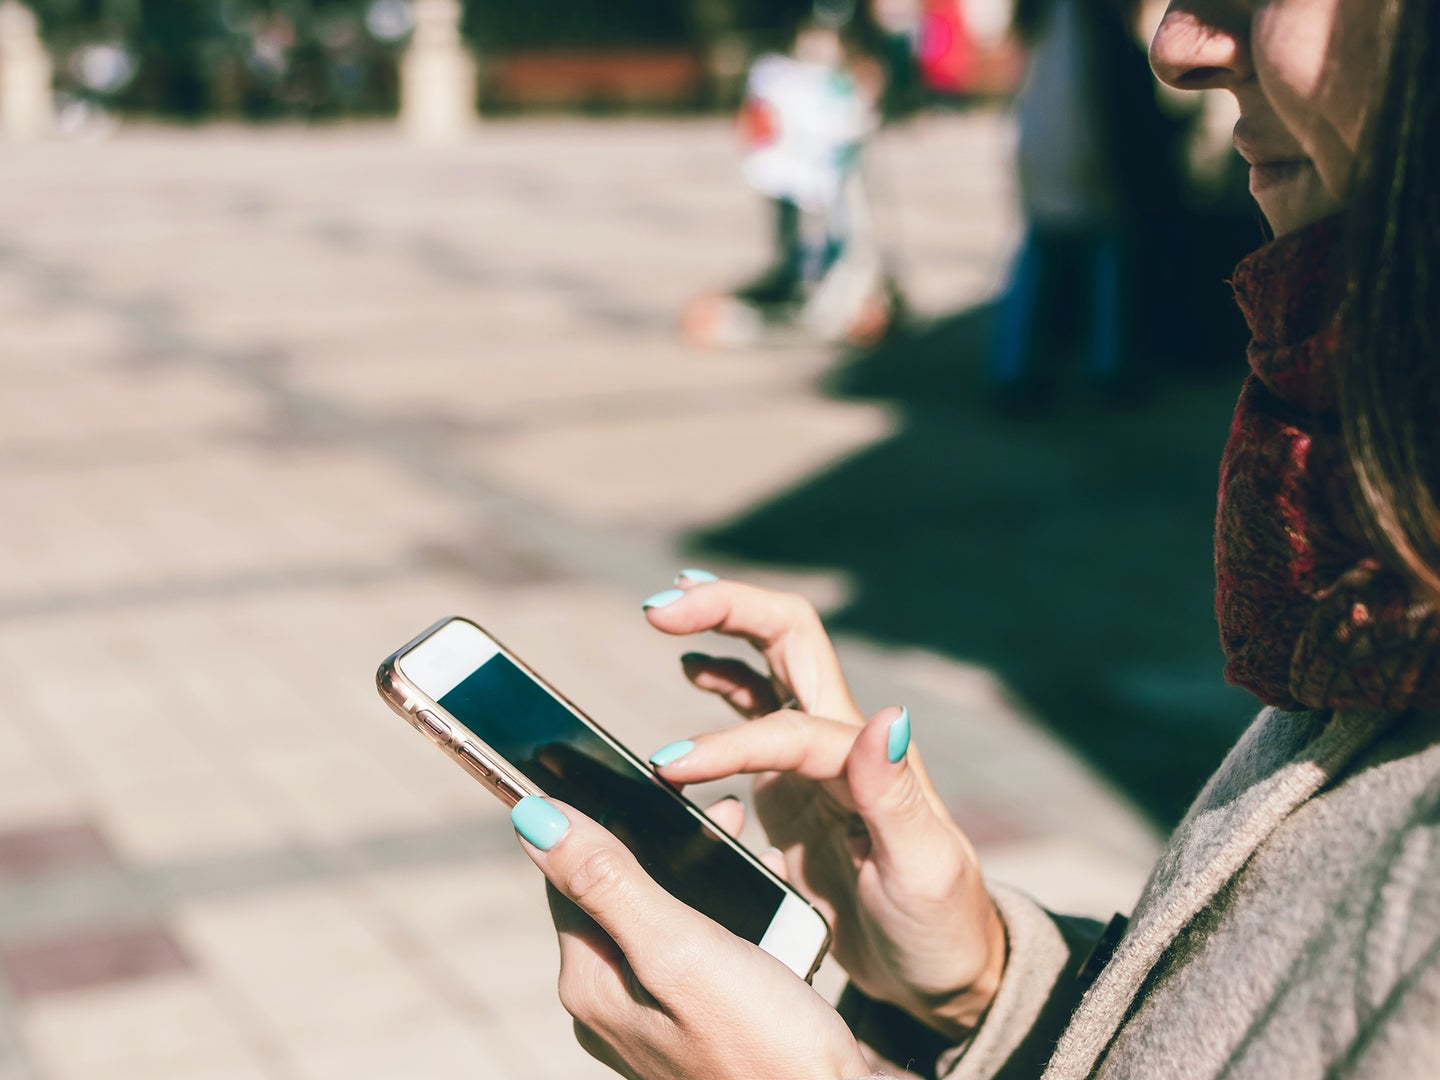 A person standing on a sidewalk outside while using their phone.